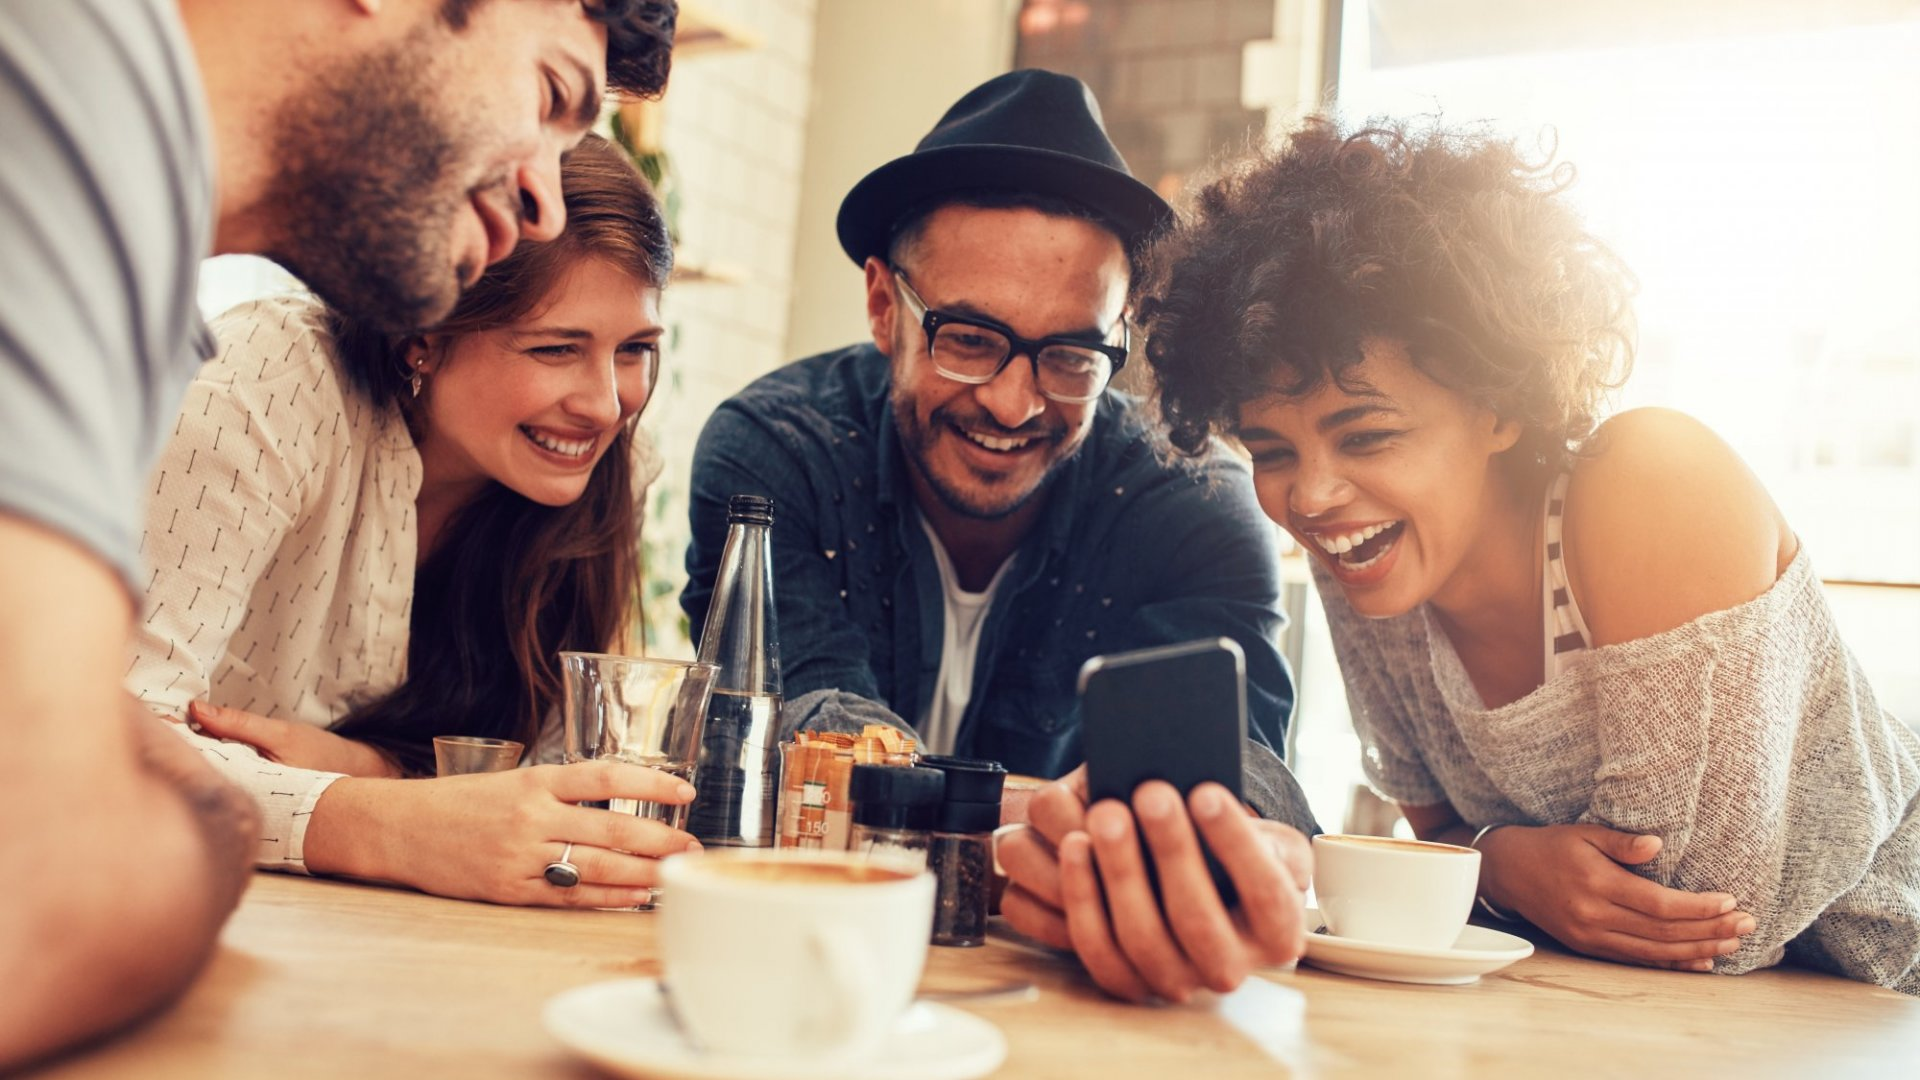 Why You Need To Stop Blaming Millennials